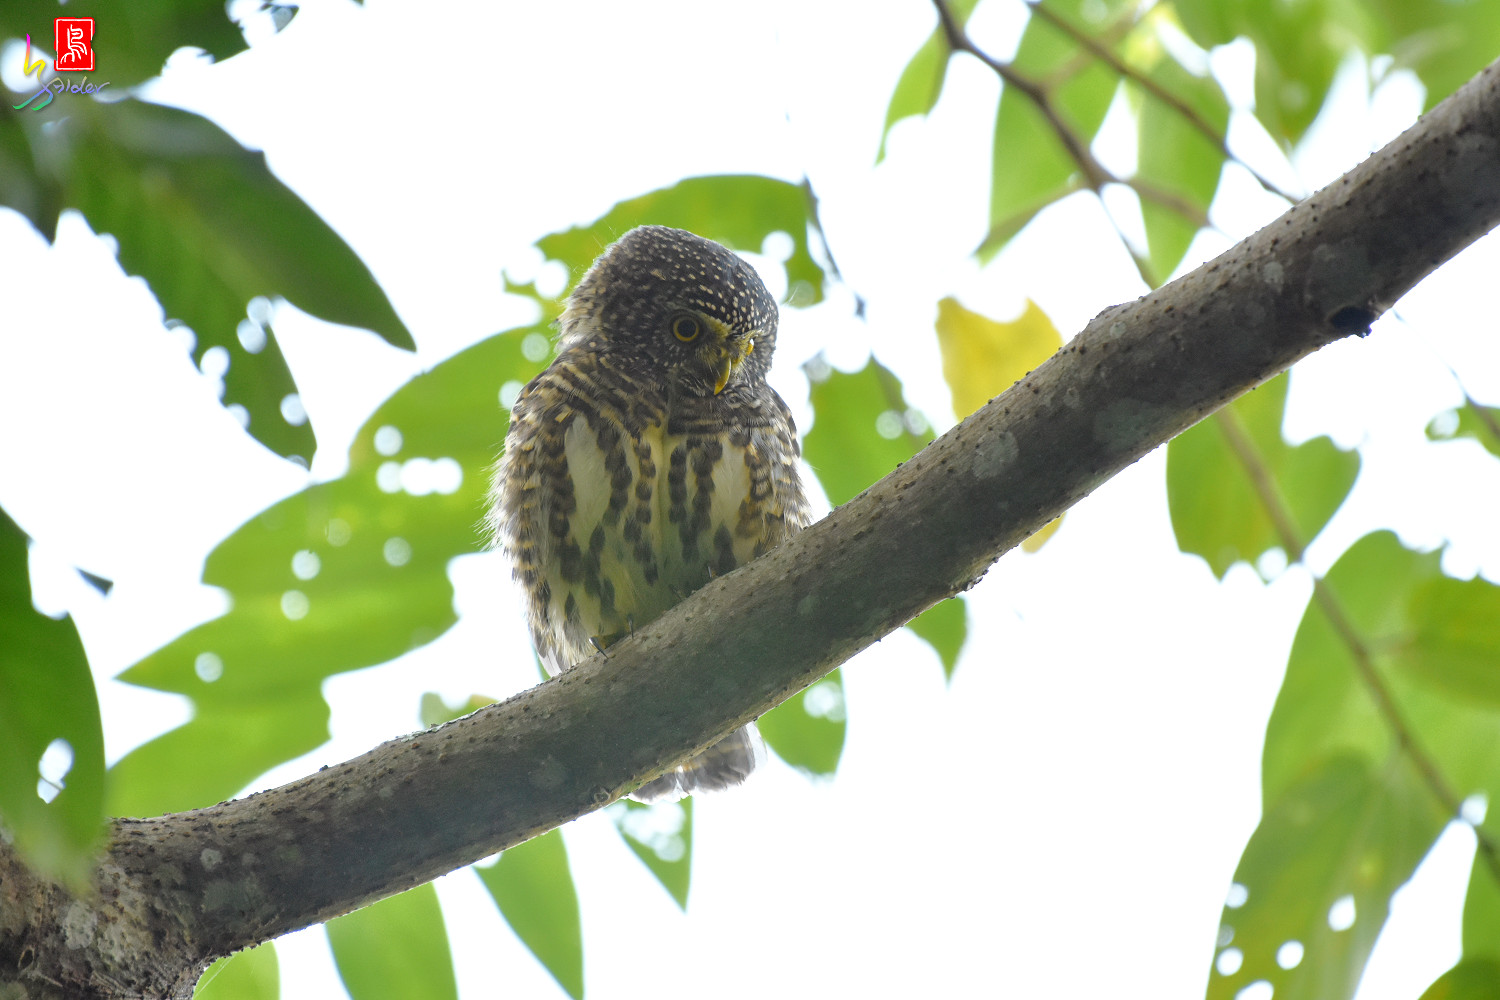 Collared_Owlet_4637